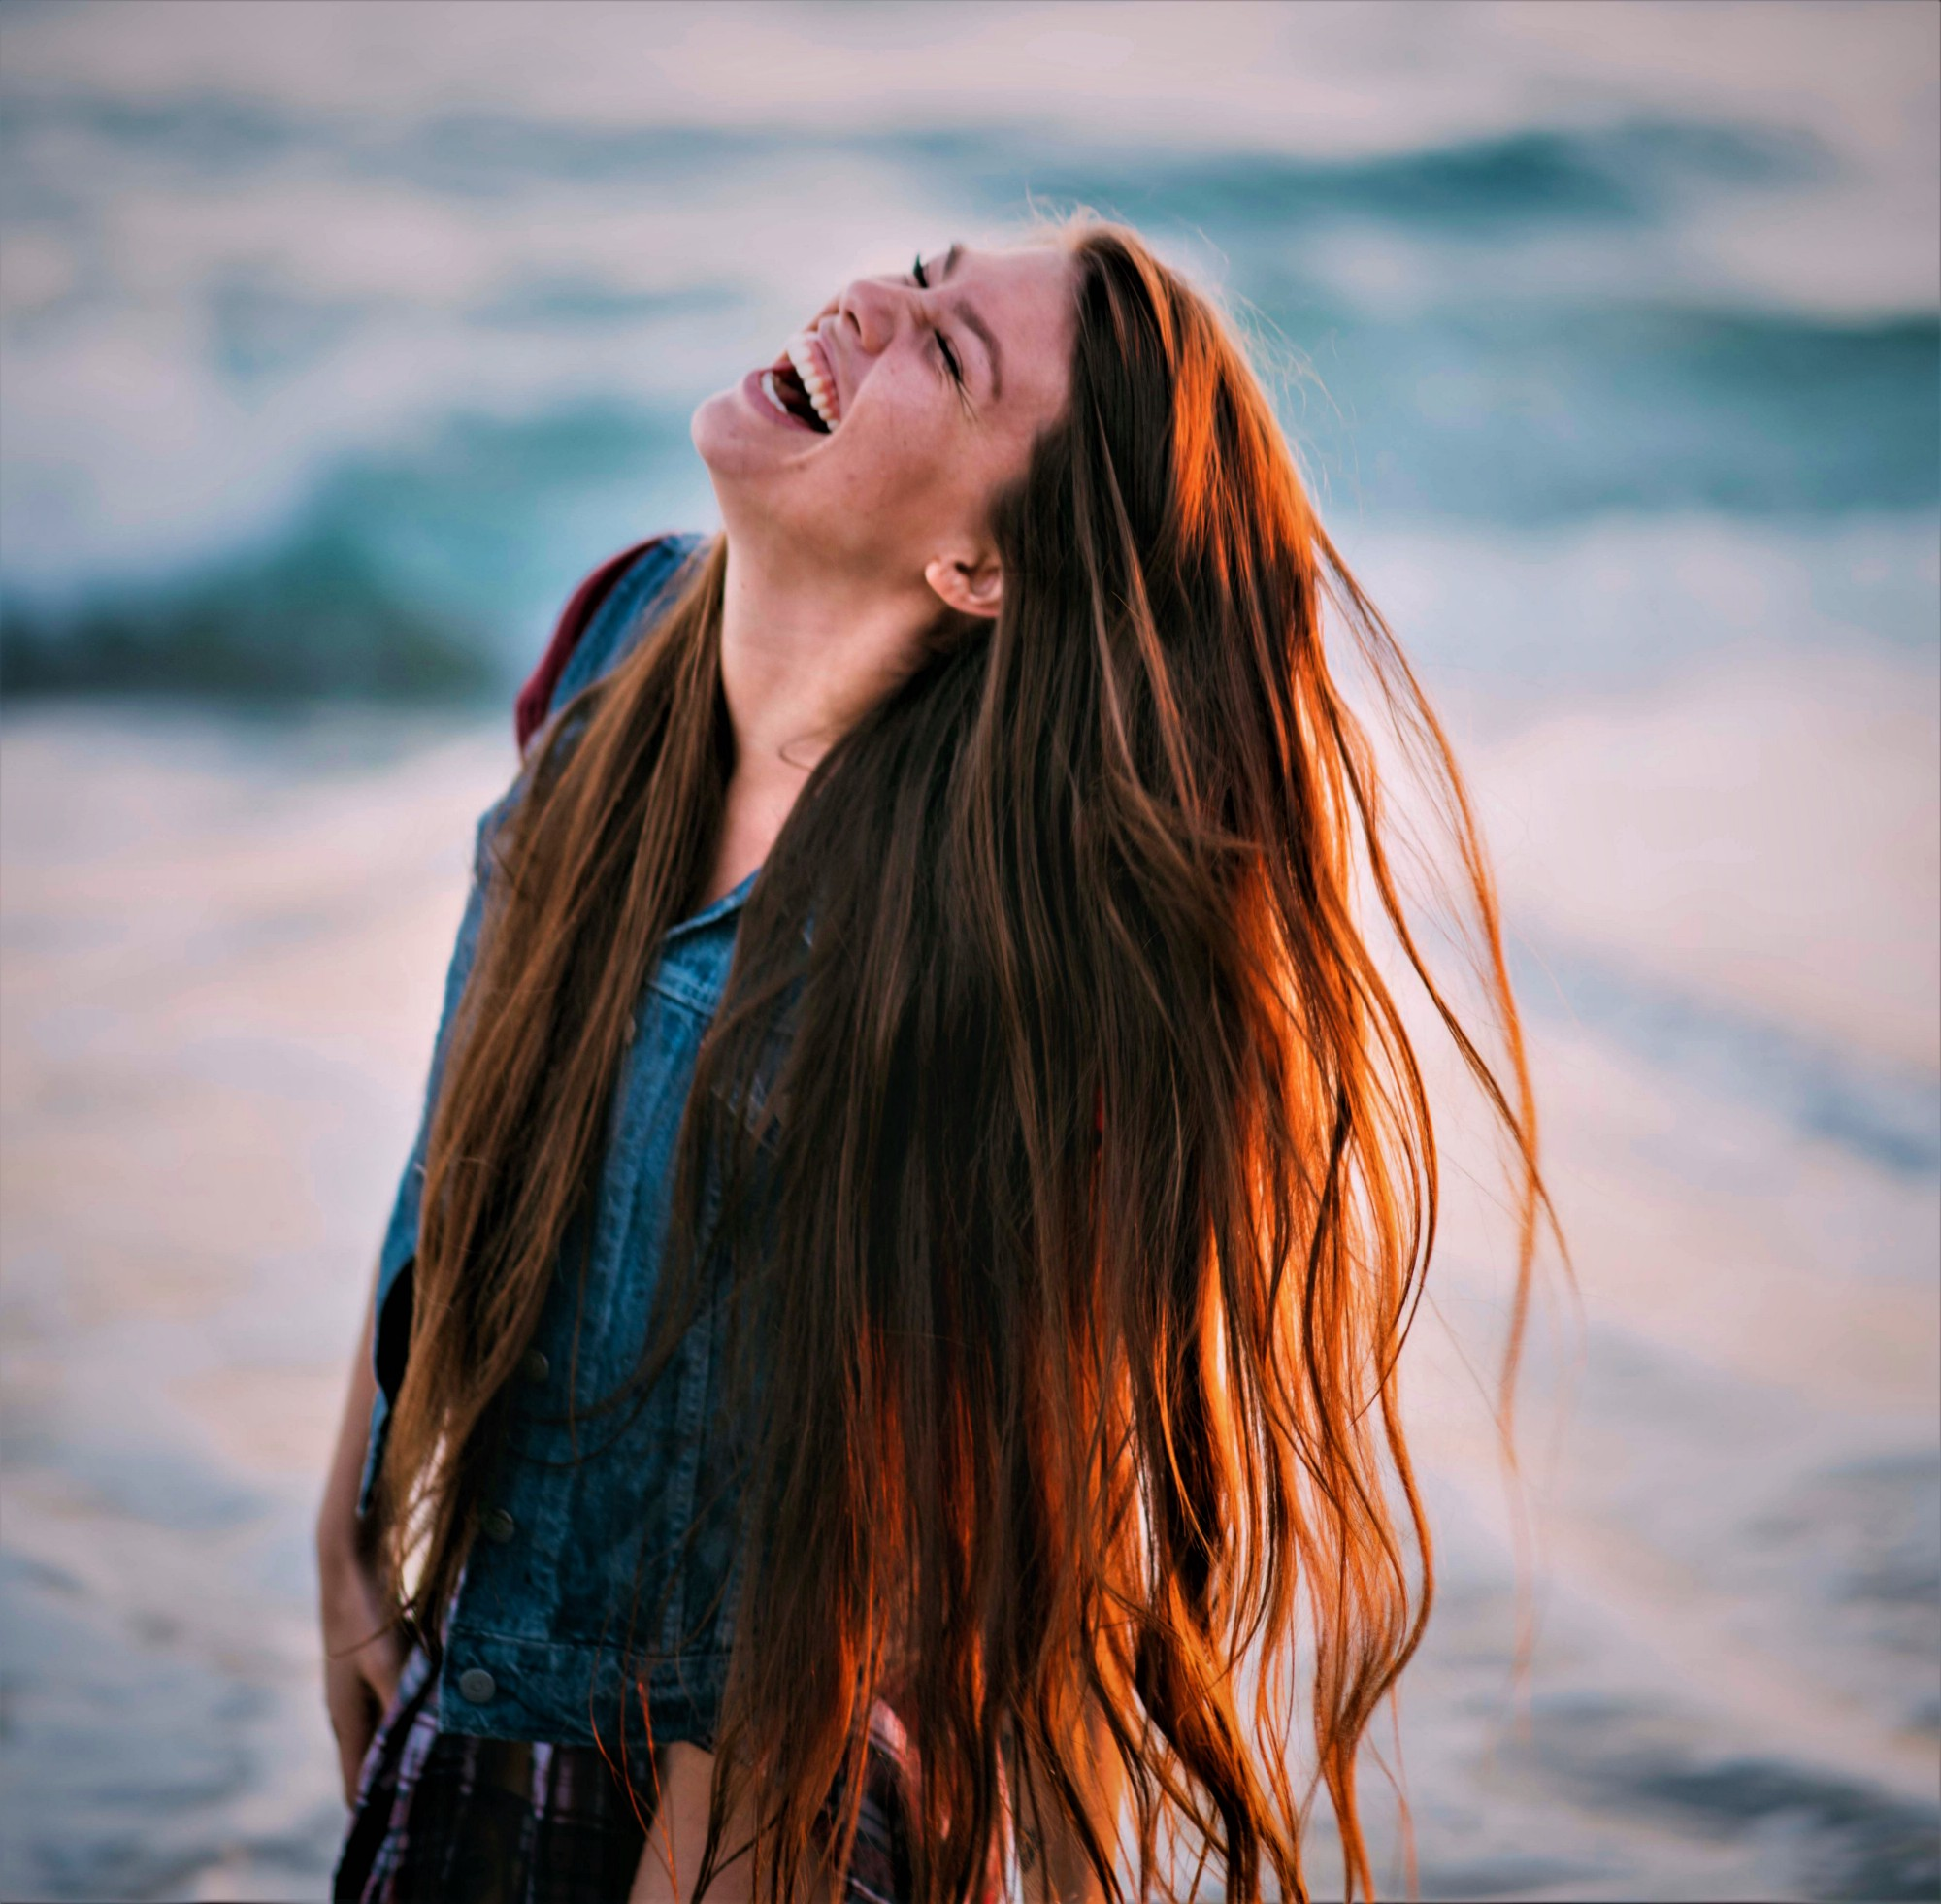 happy girl with long red hair standing in ocean waves looking up to the sky and laughing